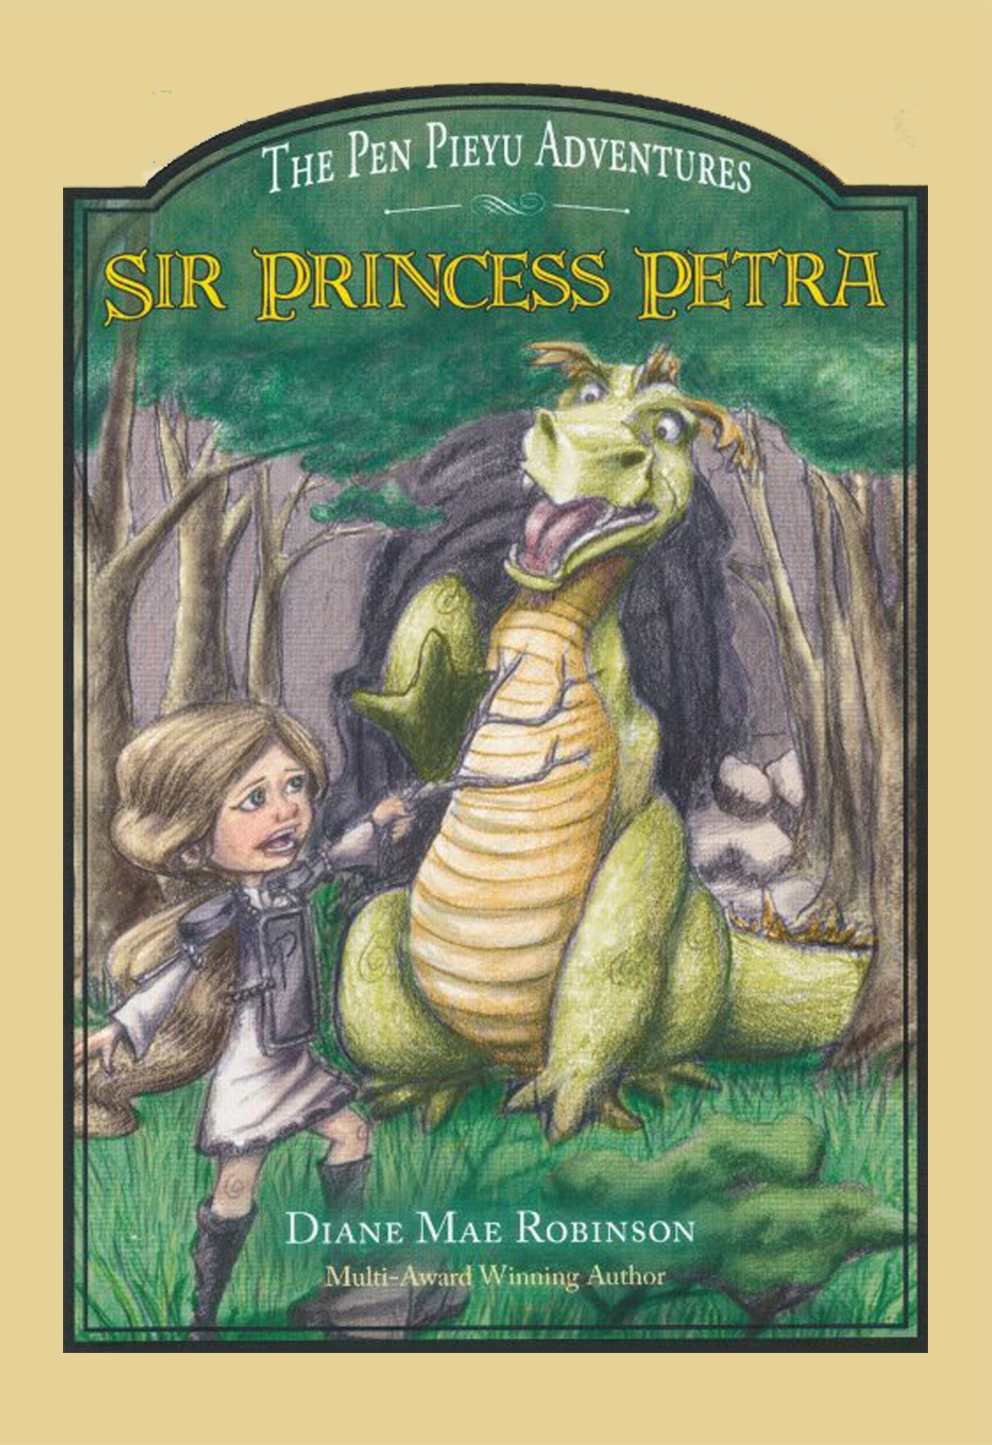 Sir Princess Petra - The Pen Pieyu Adventures (book 1), by Diane Mae Robinson